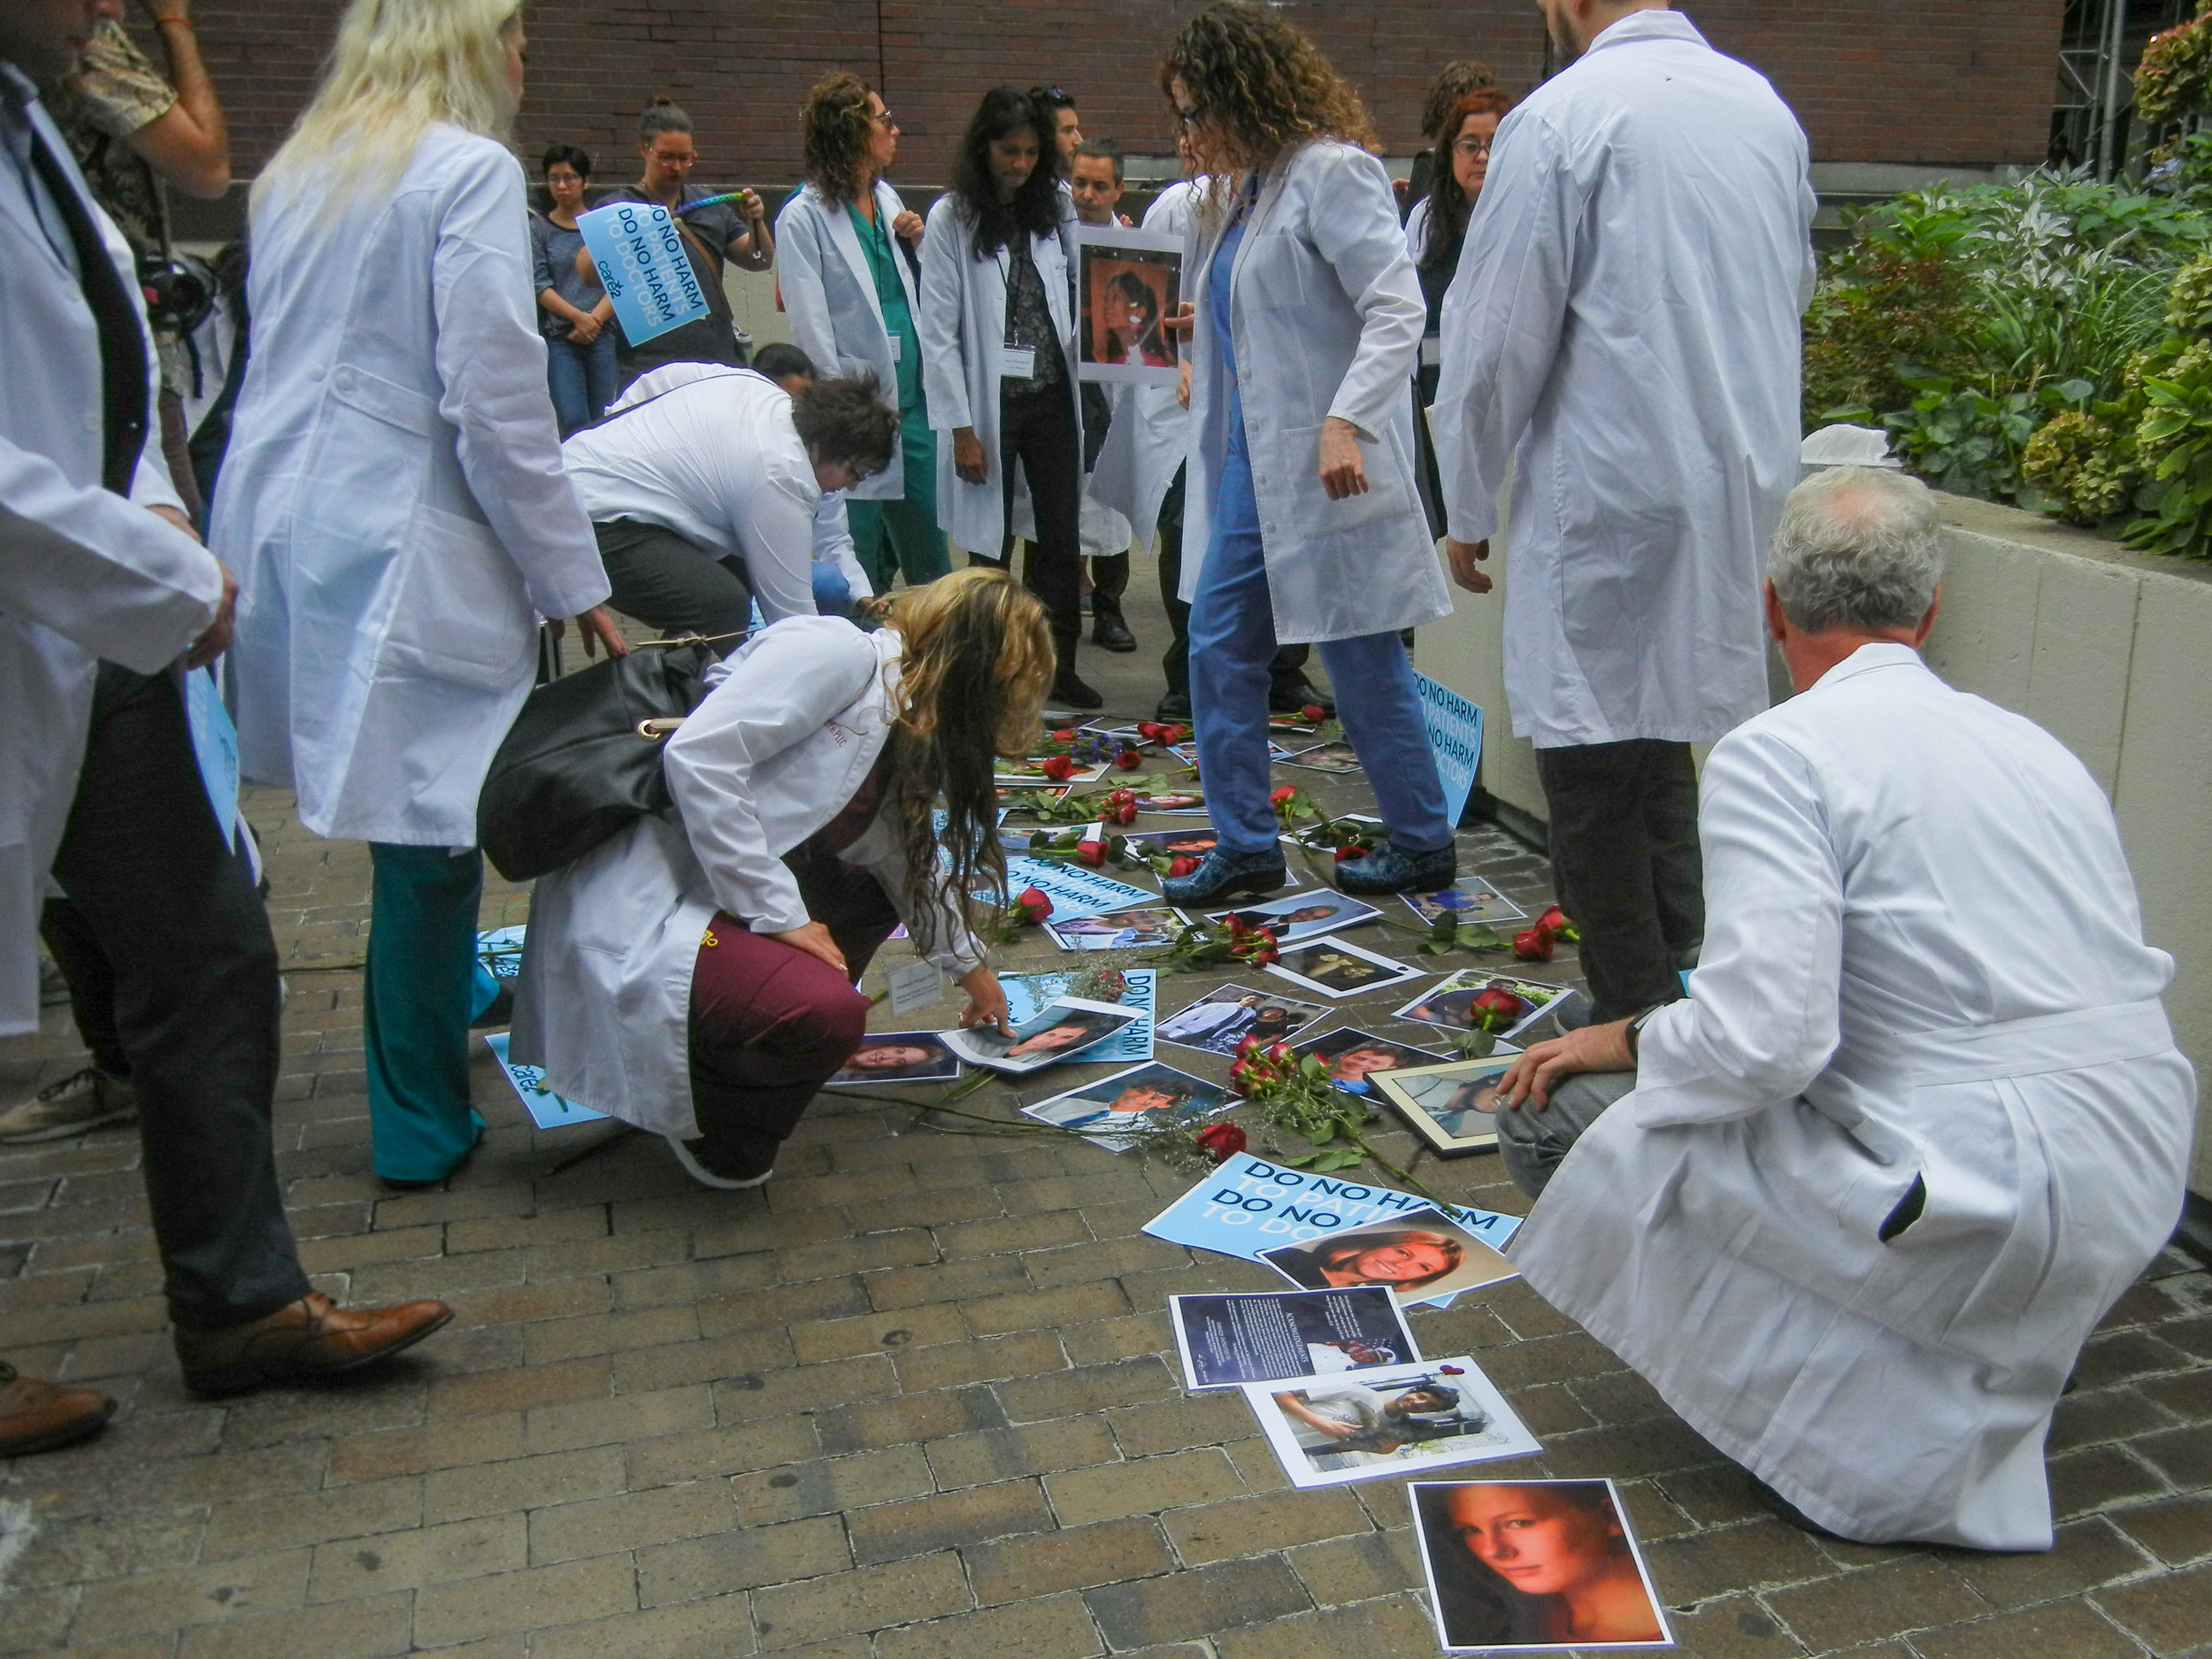 Doctors, medical professionals, family and friends laid down photos of those lost to suicide during a memorial at the site where Dr. Deelshad Joomun died | Carolyn Adams